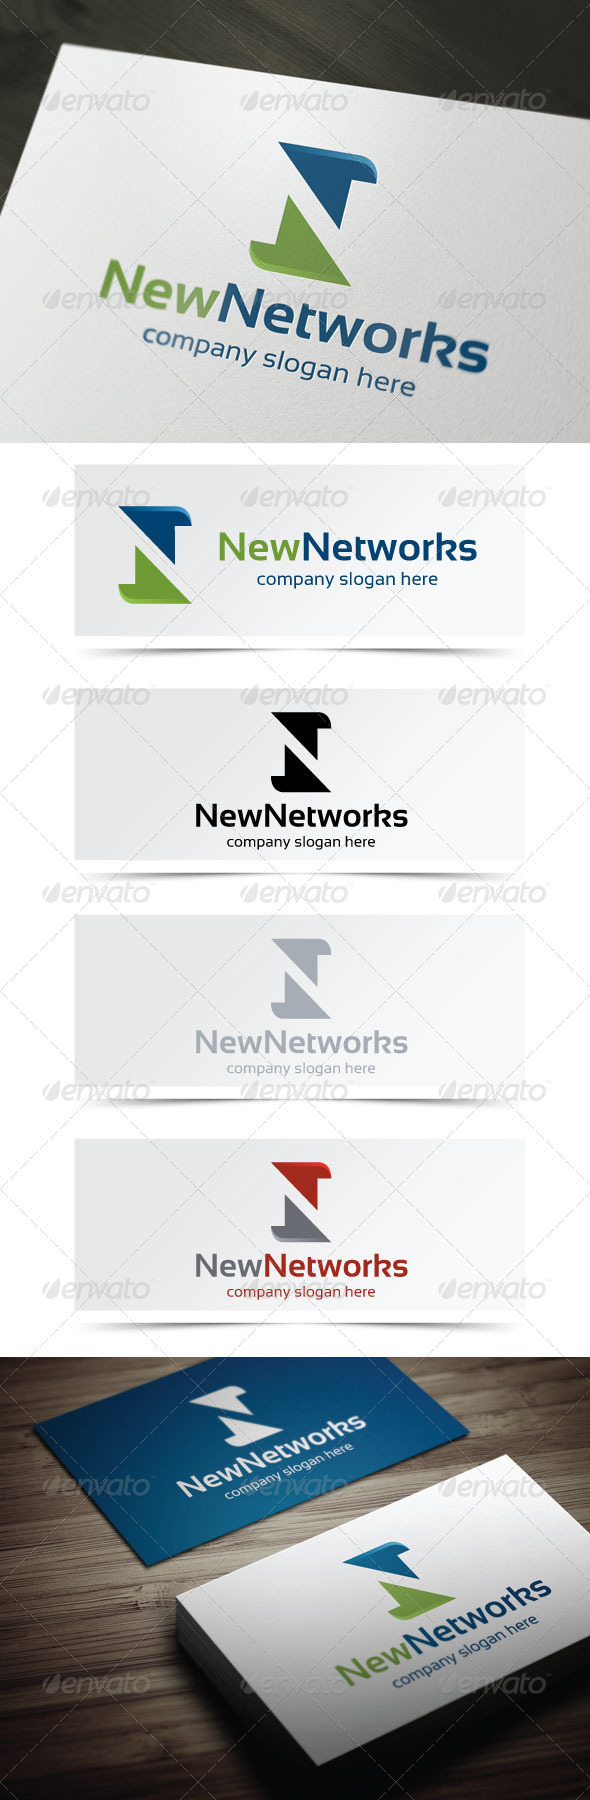 GraphicRiver New Networks 5054684